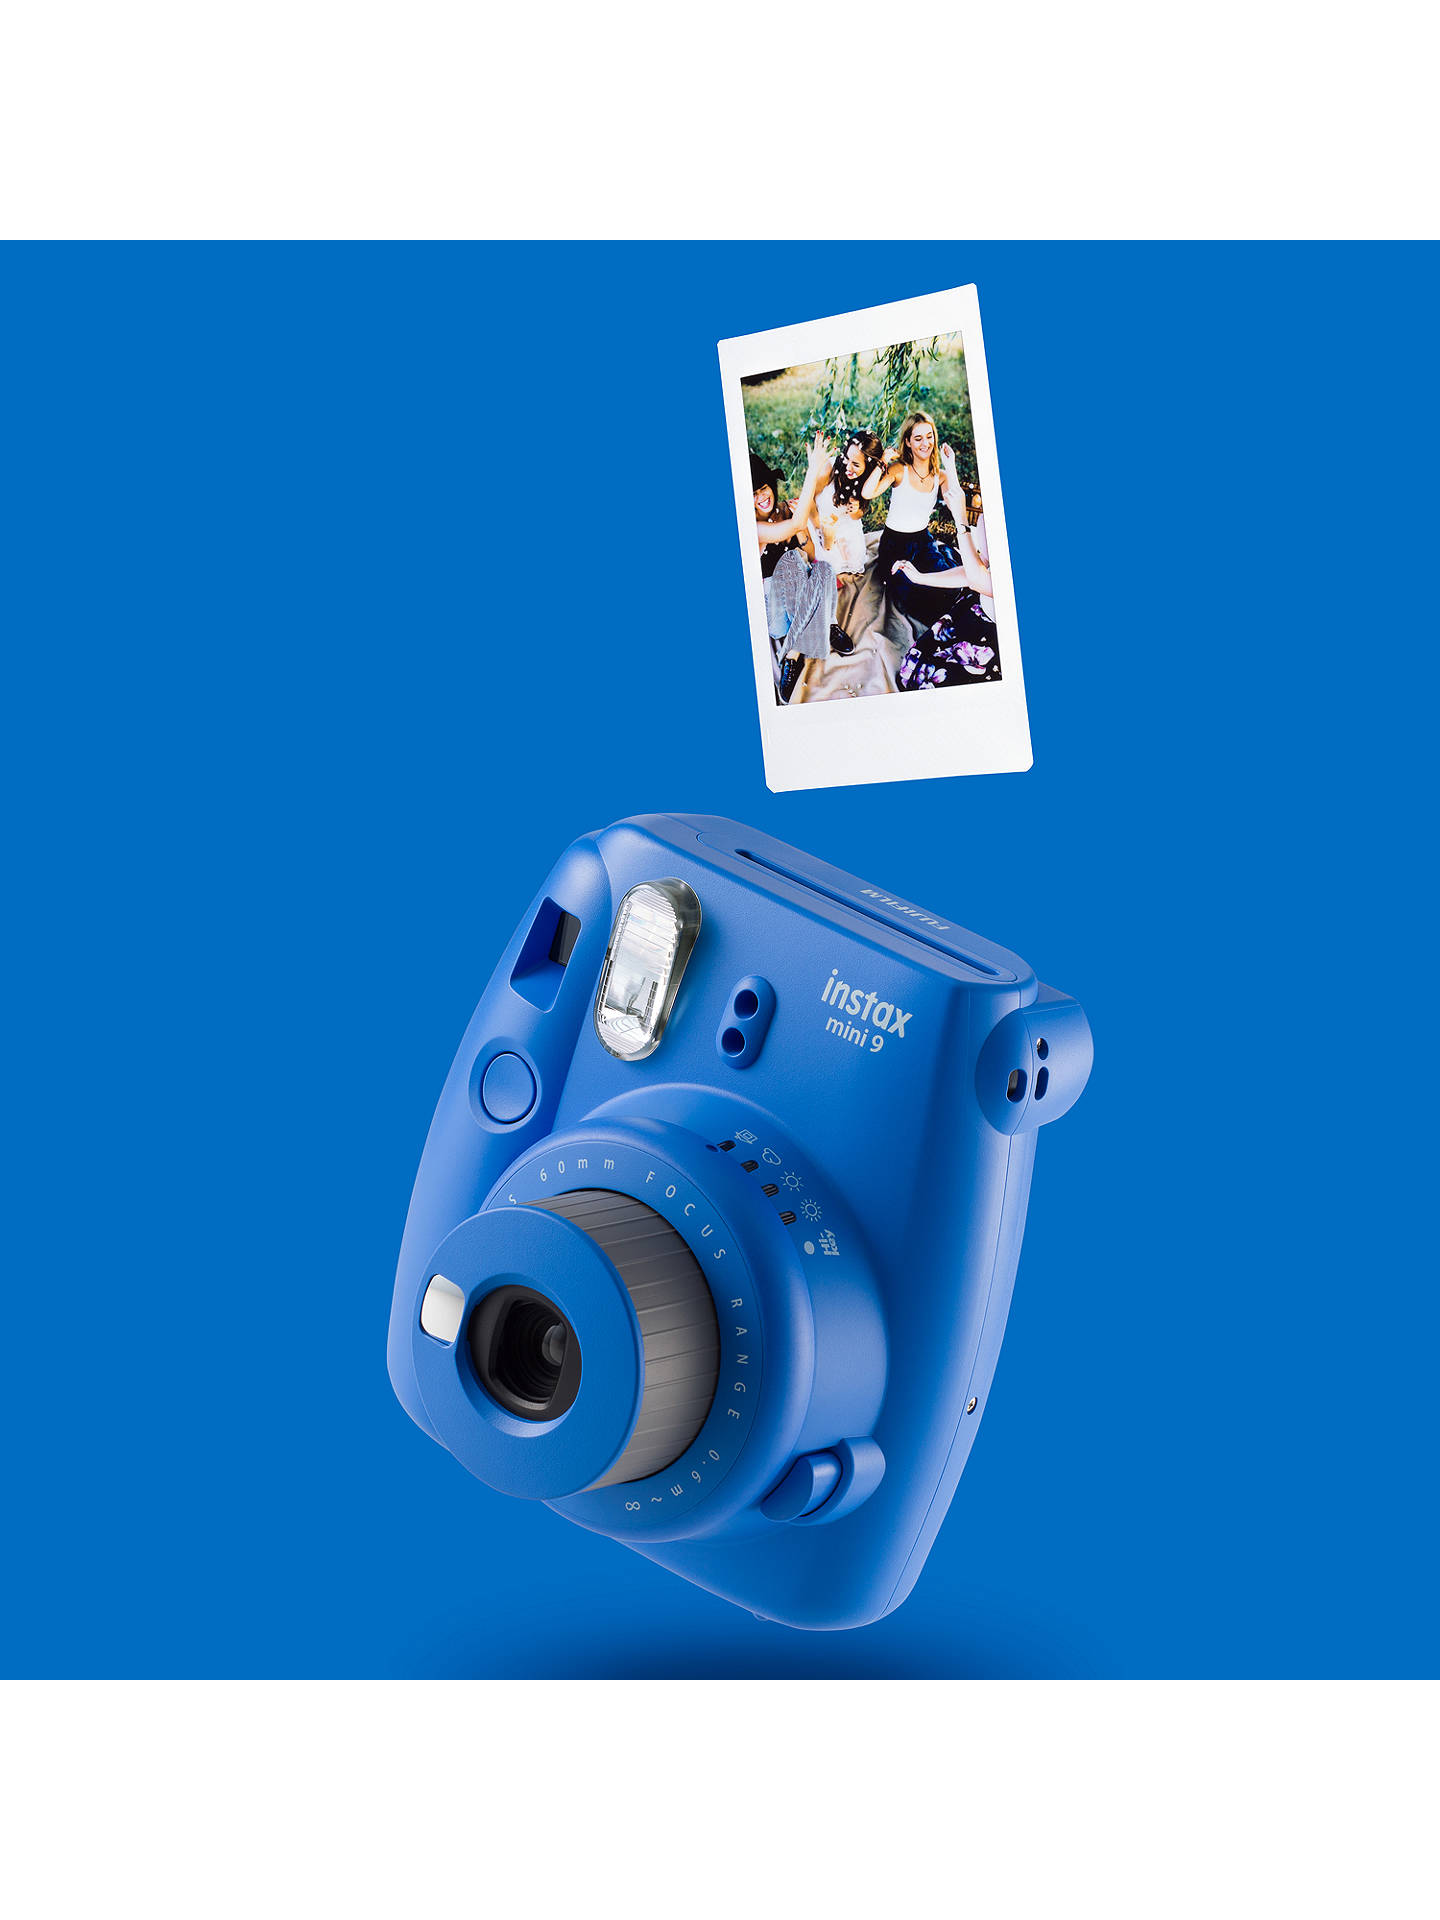 f6cbfd57284 ... Buy Fujifilm Instax Mini 9 Instant Camera with 10 Shots of Film